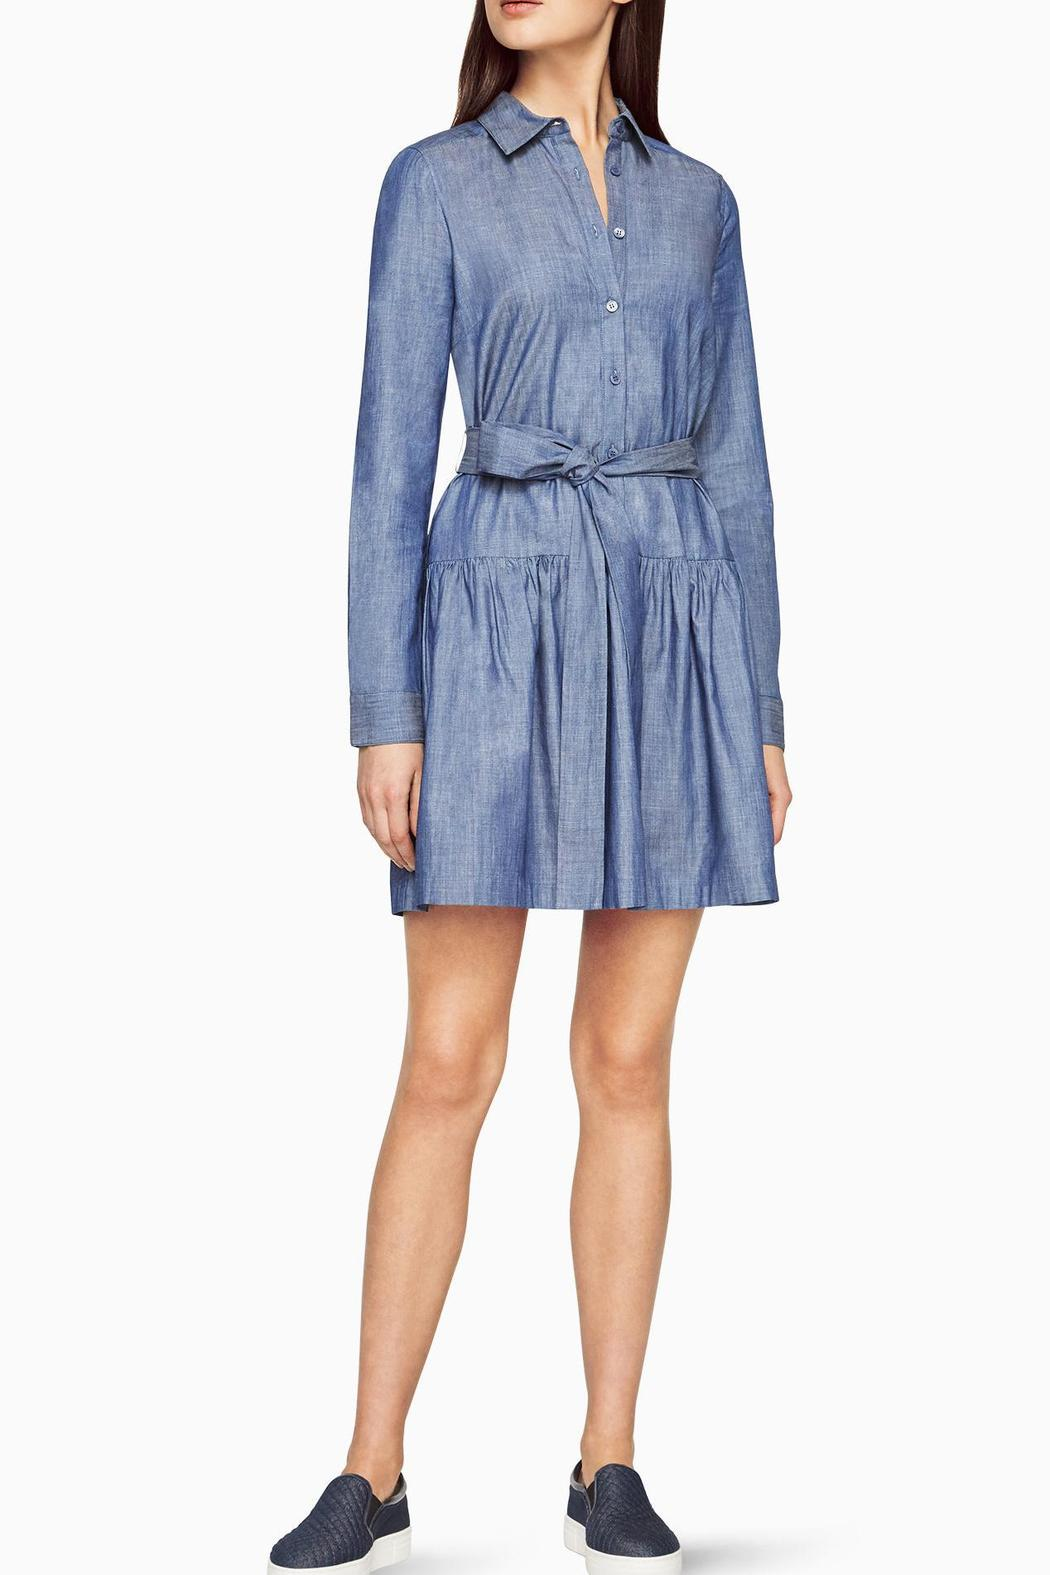 BCBG Max Azria Chambray Twill Dress - Side Cropped Image